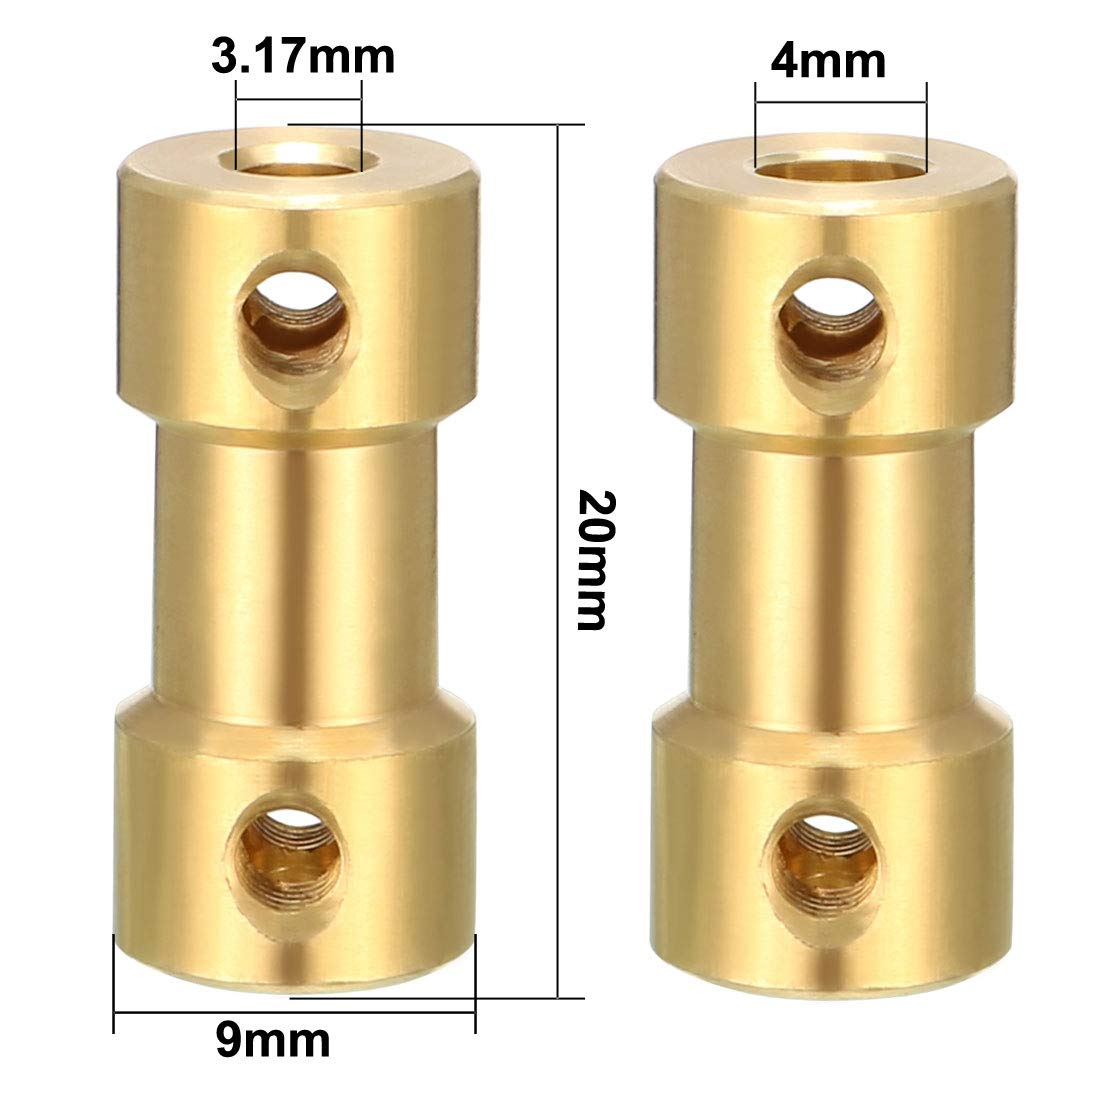 sourcing map Wellenkupplung 3mm x 5mm Stecker Adapter f/ür RC Flugzeug Boot Motor L25XD10 DE de